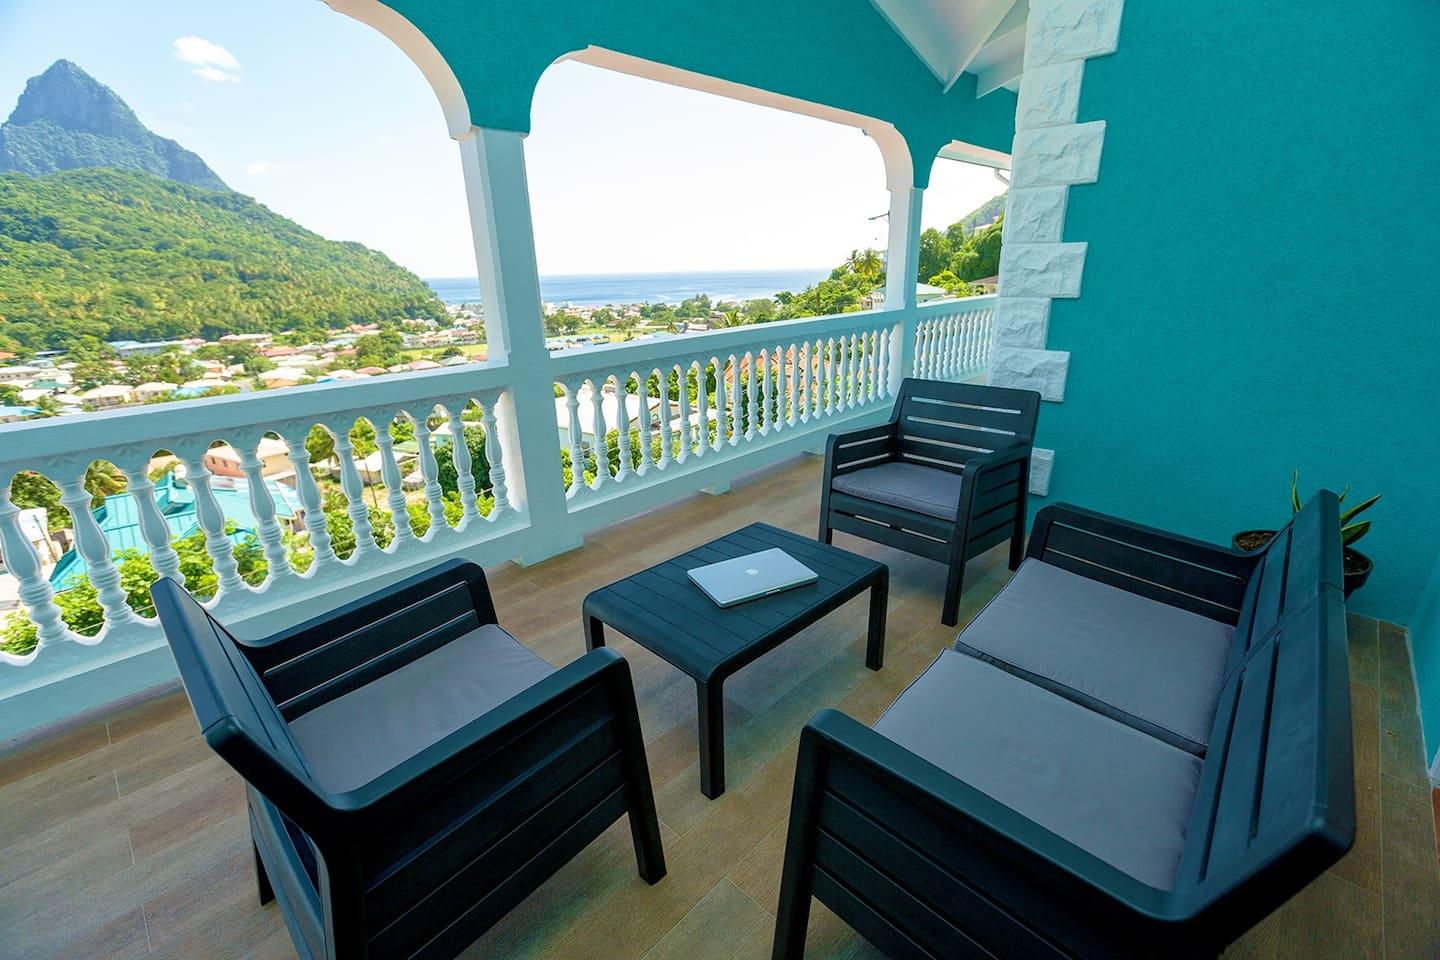 Private, Spacious, modern, and comfortable!! Free WIFI!! Private Parking!! Full Kitchen!! easily the BEST VALUE you can find! For The Best Experience In St. Lucia - Stunning Pitons/ocean views, upscale amenities